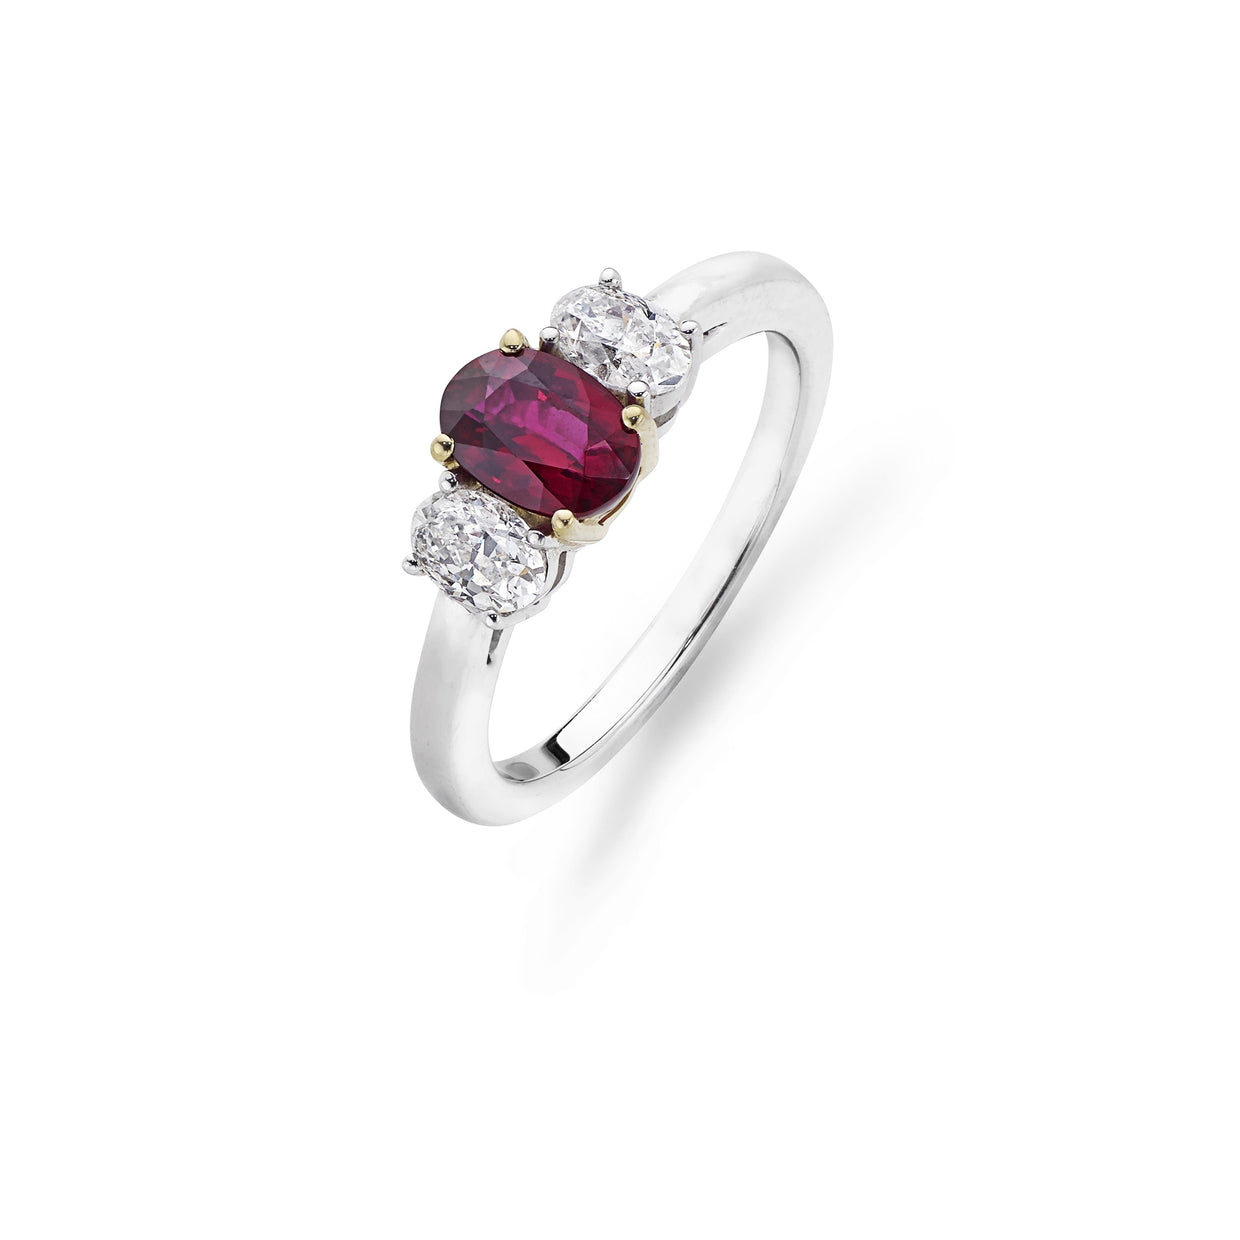 Ruby & Diamond 3-Stone Engagement Ring in Platinum-Hamilton & Inches